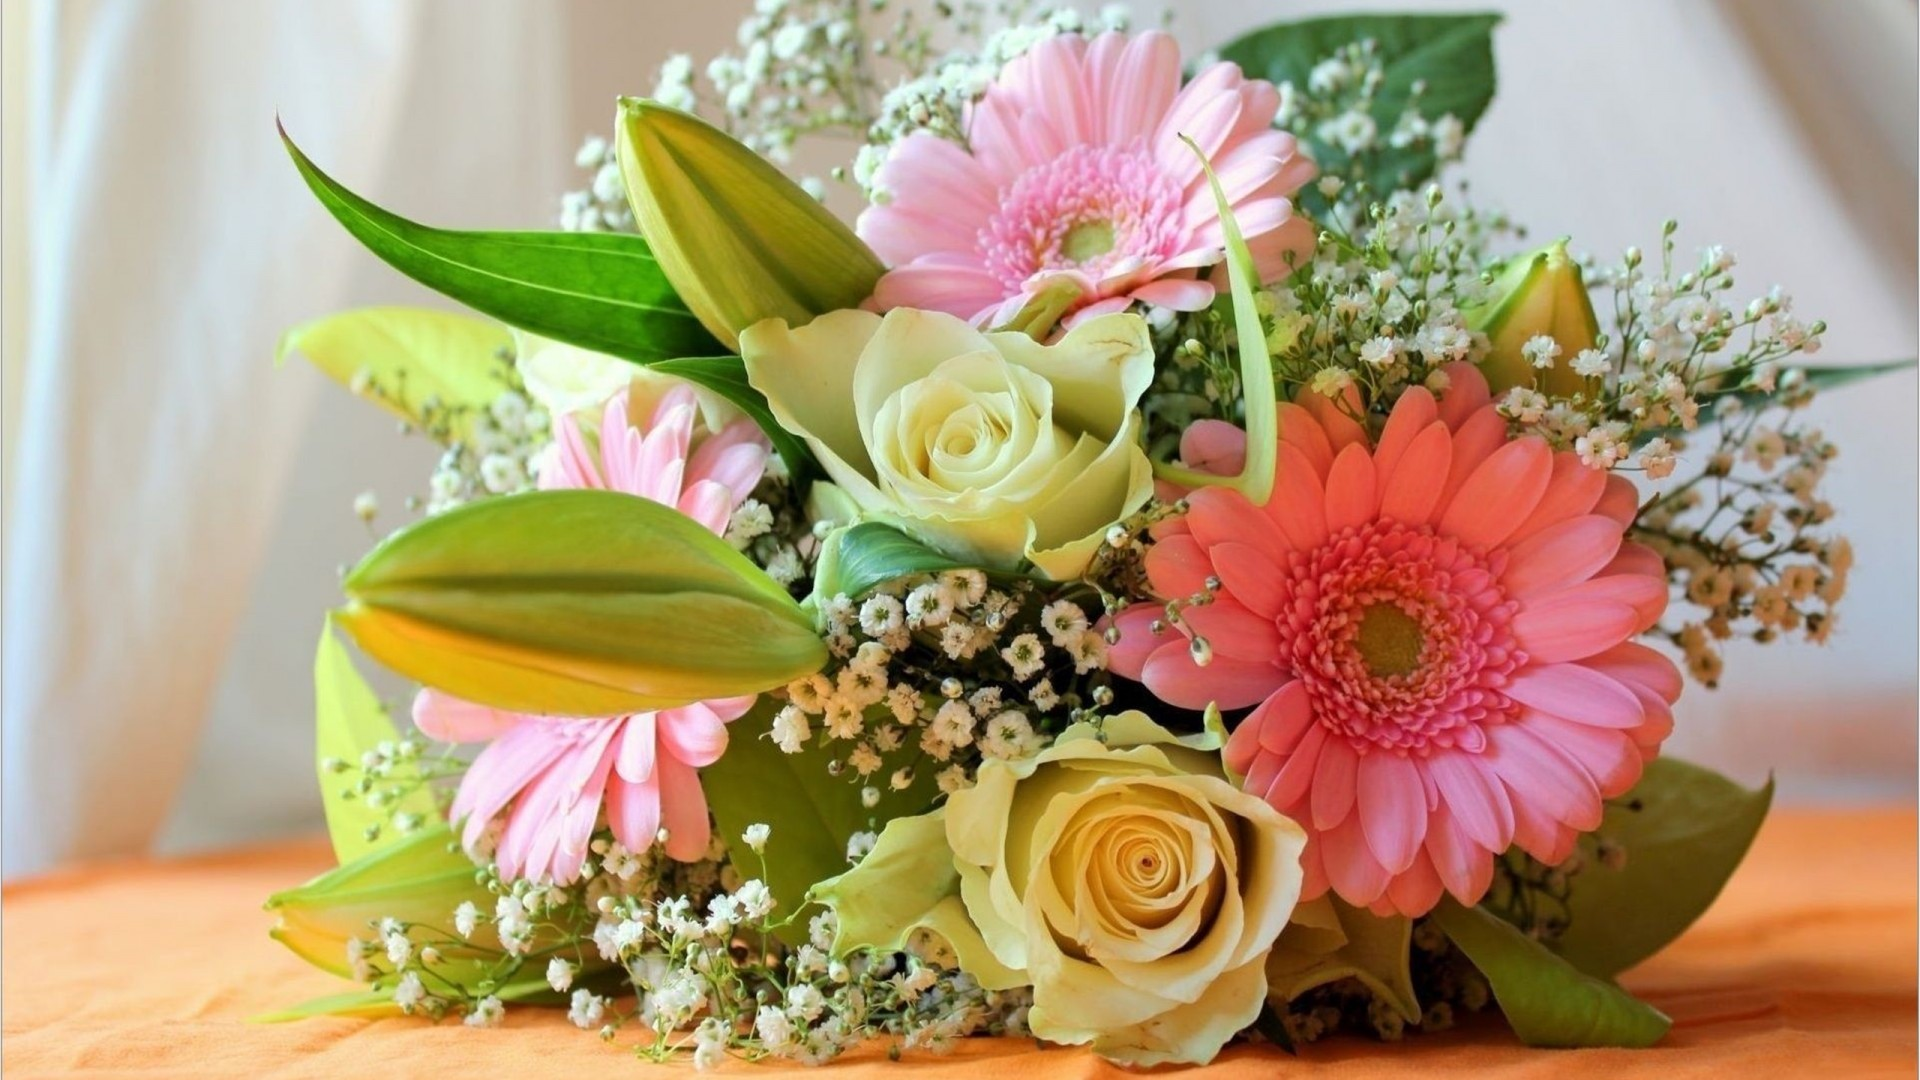 NEW! Receive A Free Vase With Orders Over £35 – Arena Flowers Voucher Code